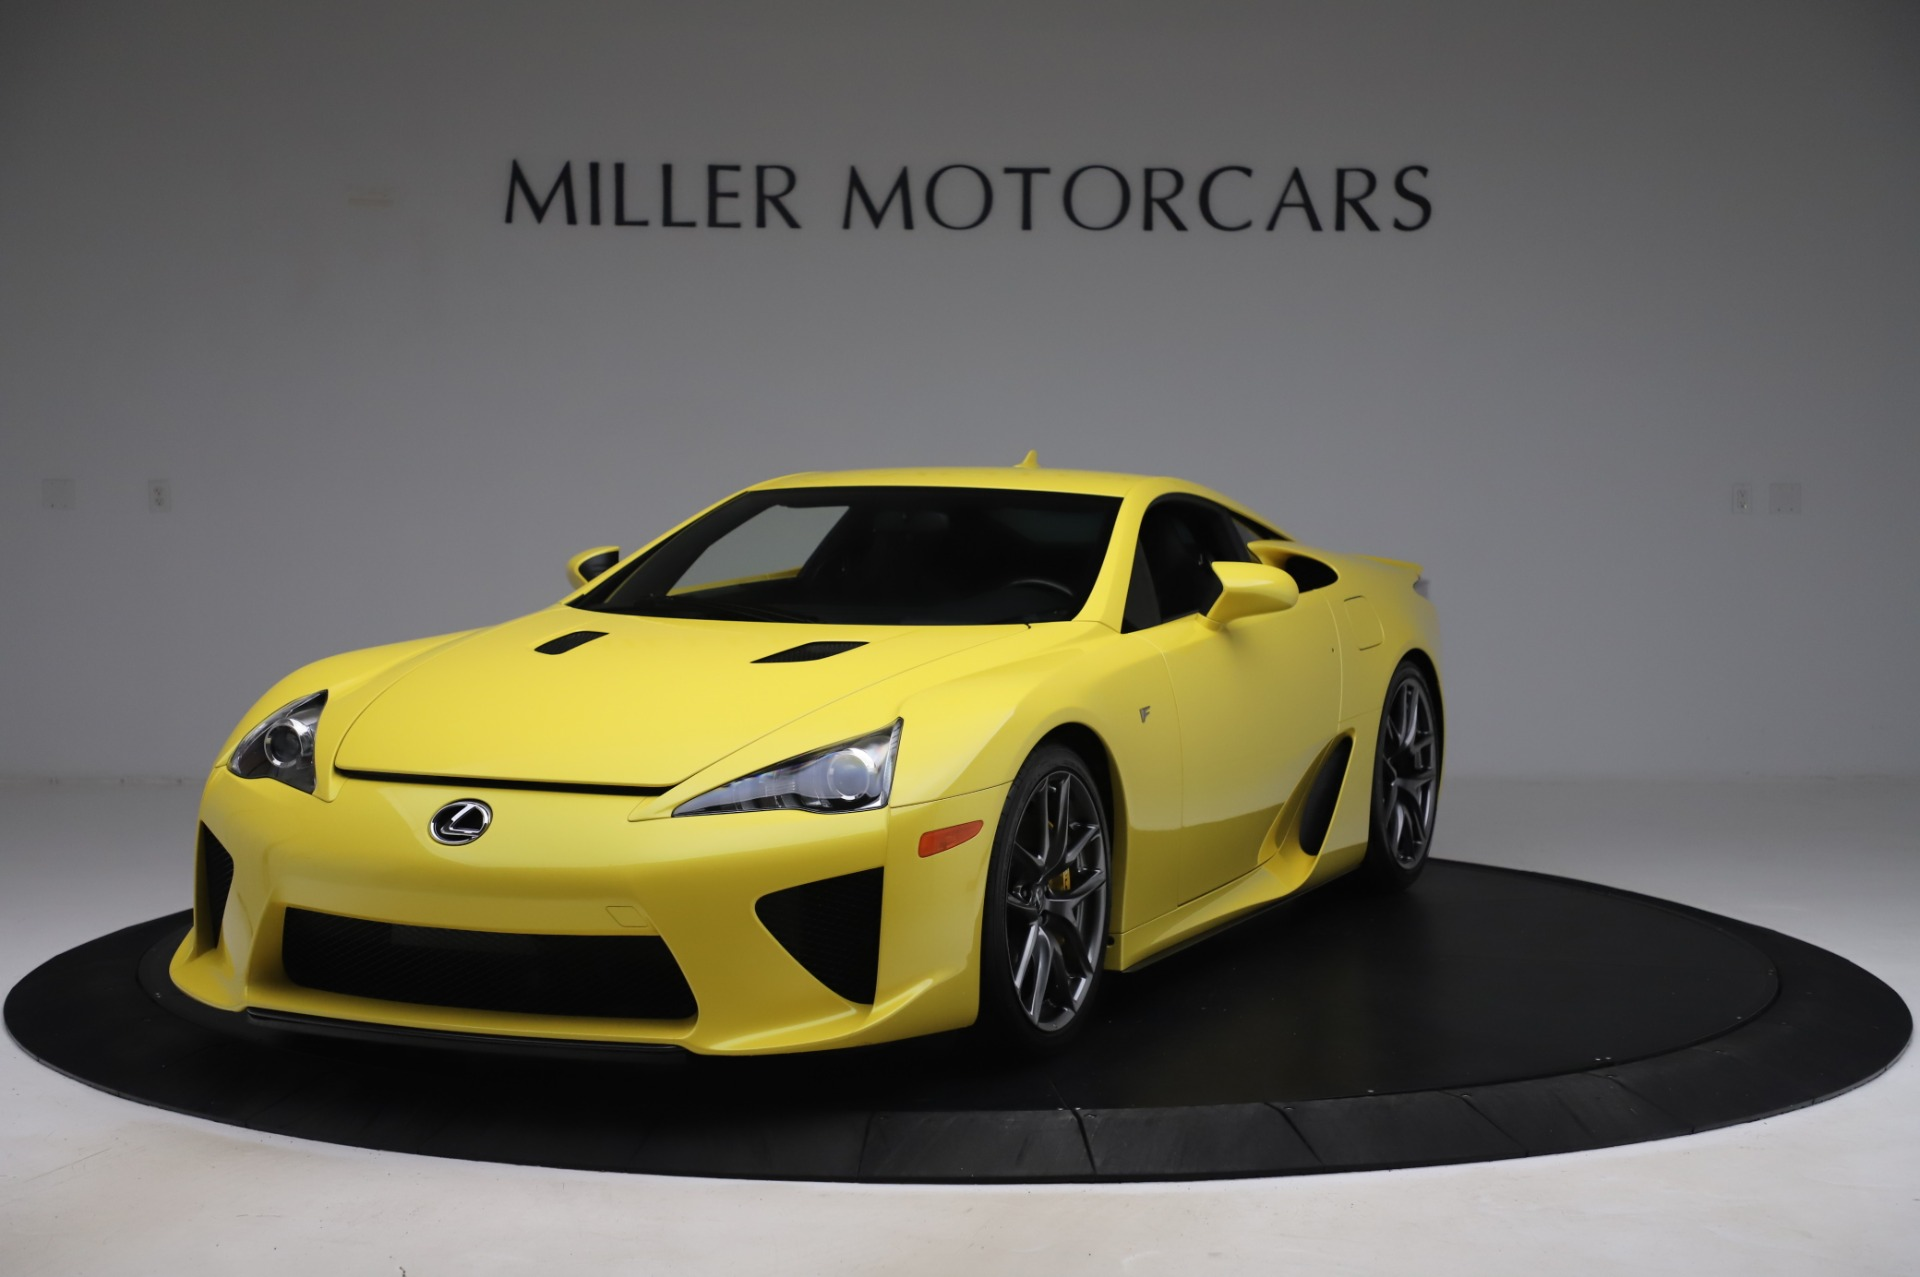 Used 2012 Lexus LFA for sale $509,900 at Maserati of Greenwich in Greenwich CT 06830 1